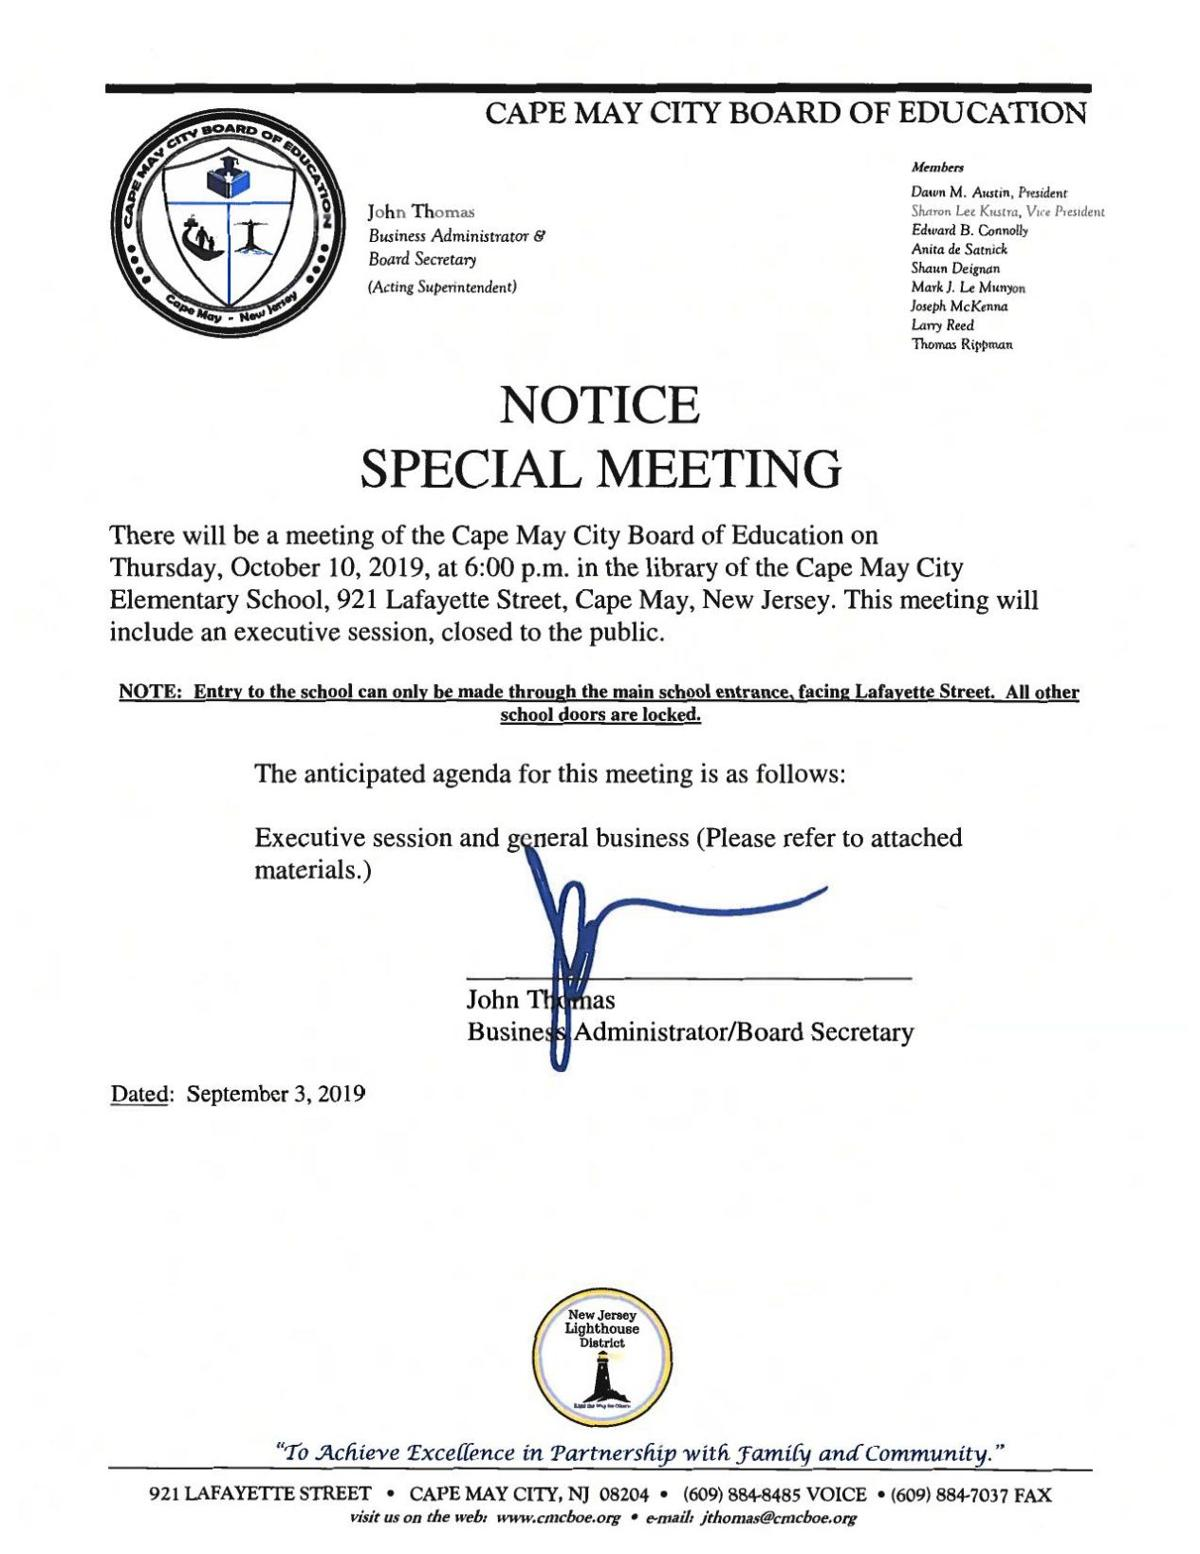 Cape May City Elementary School lBoard of Education Special Meeting Oct. 10, 2019